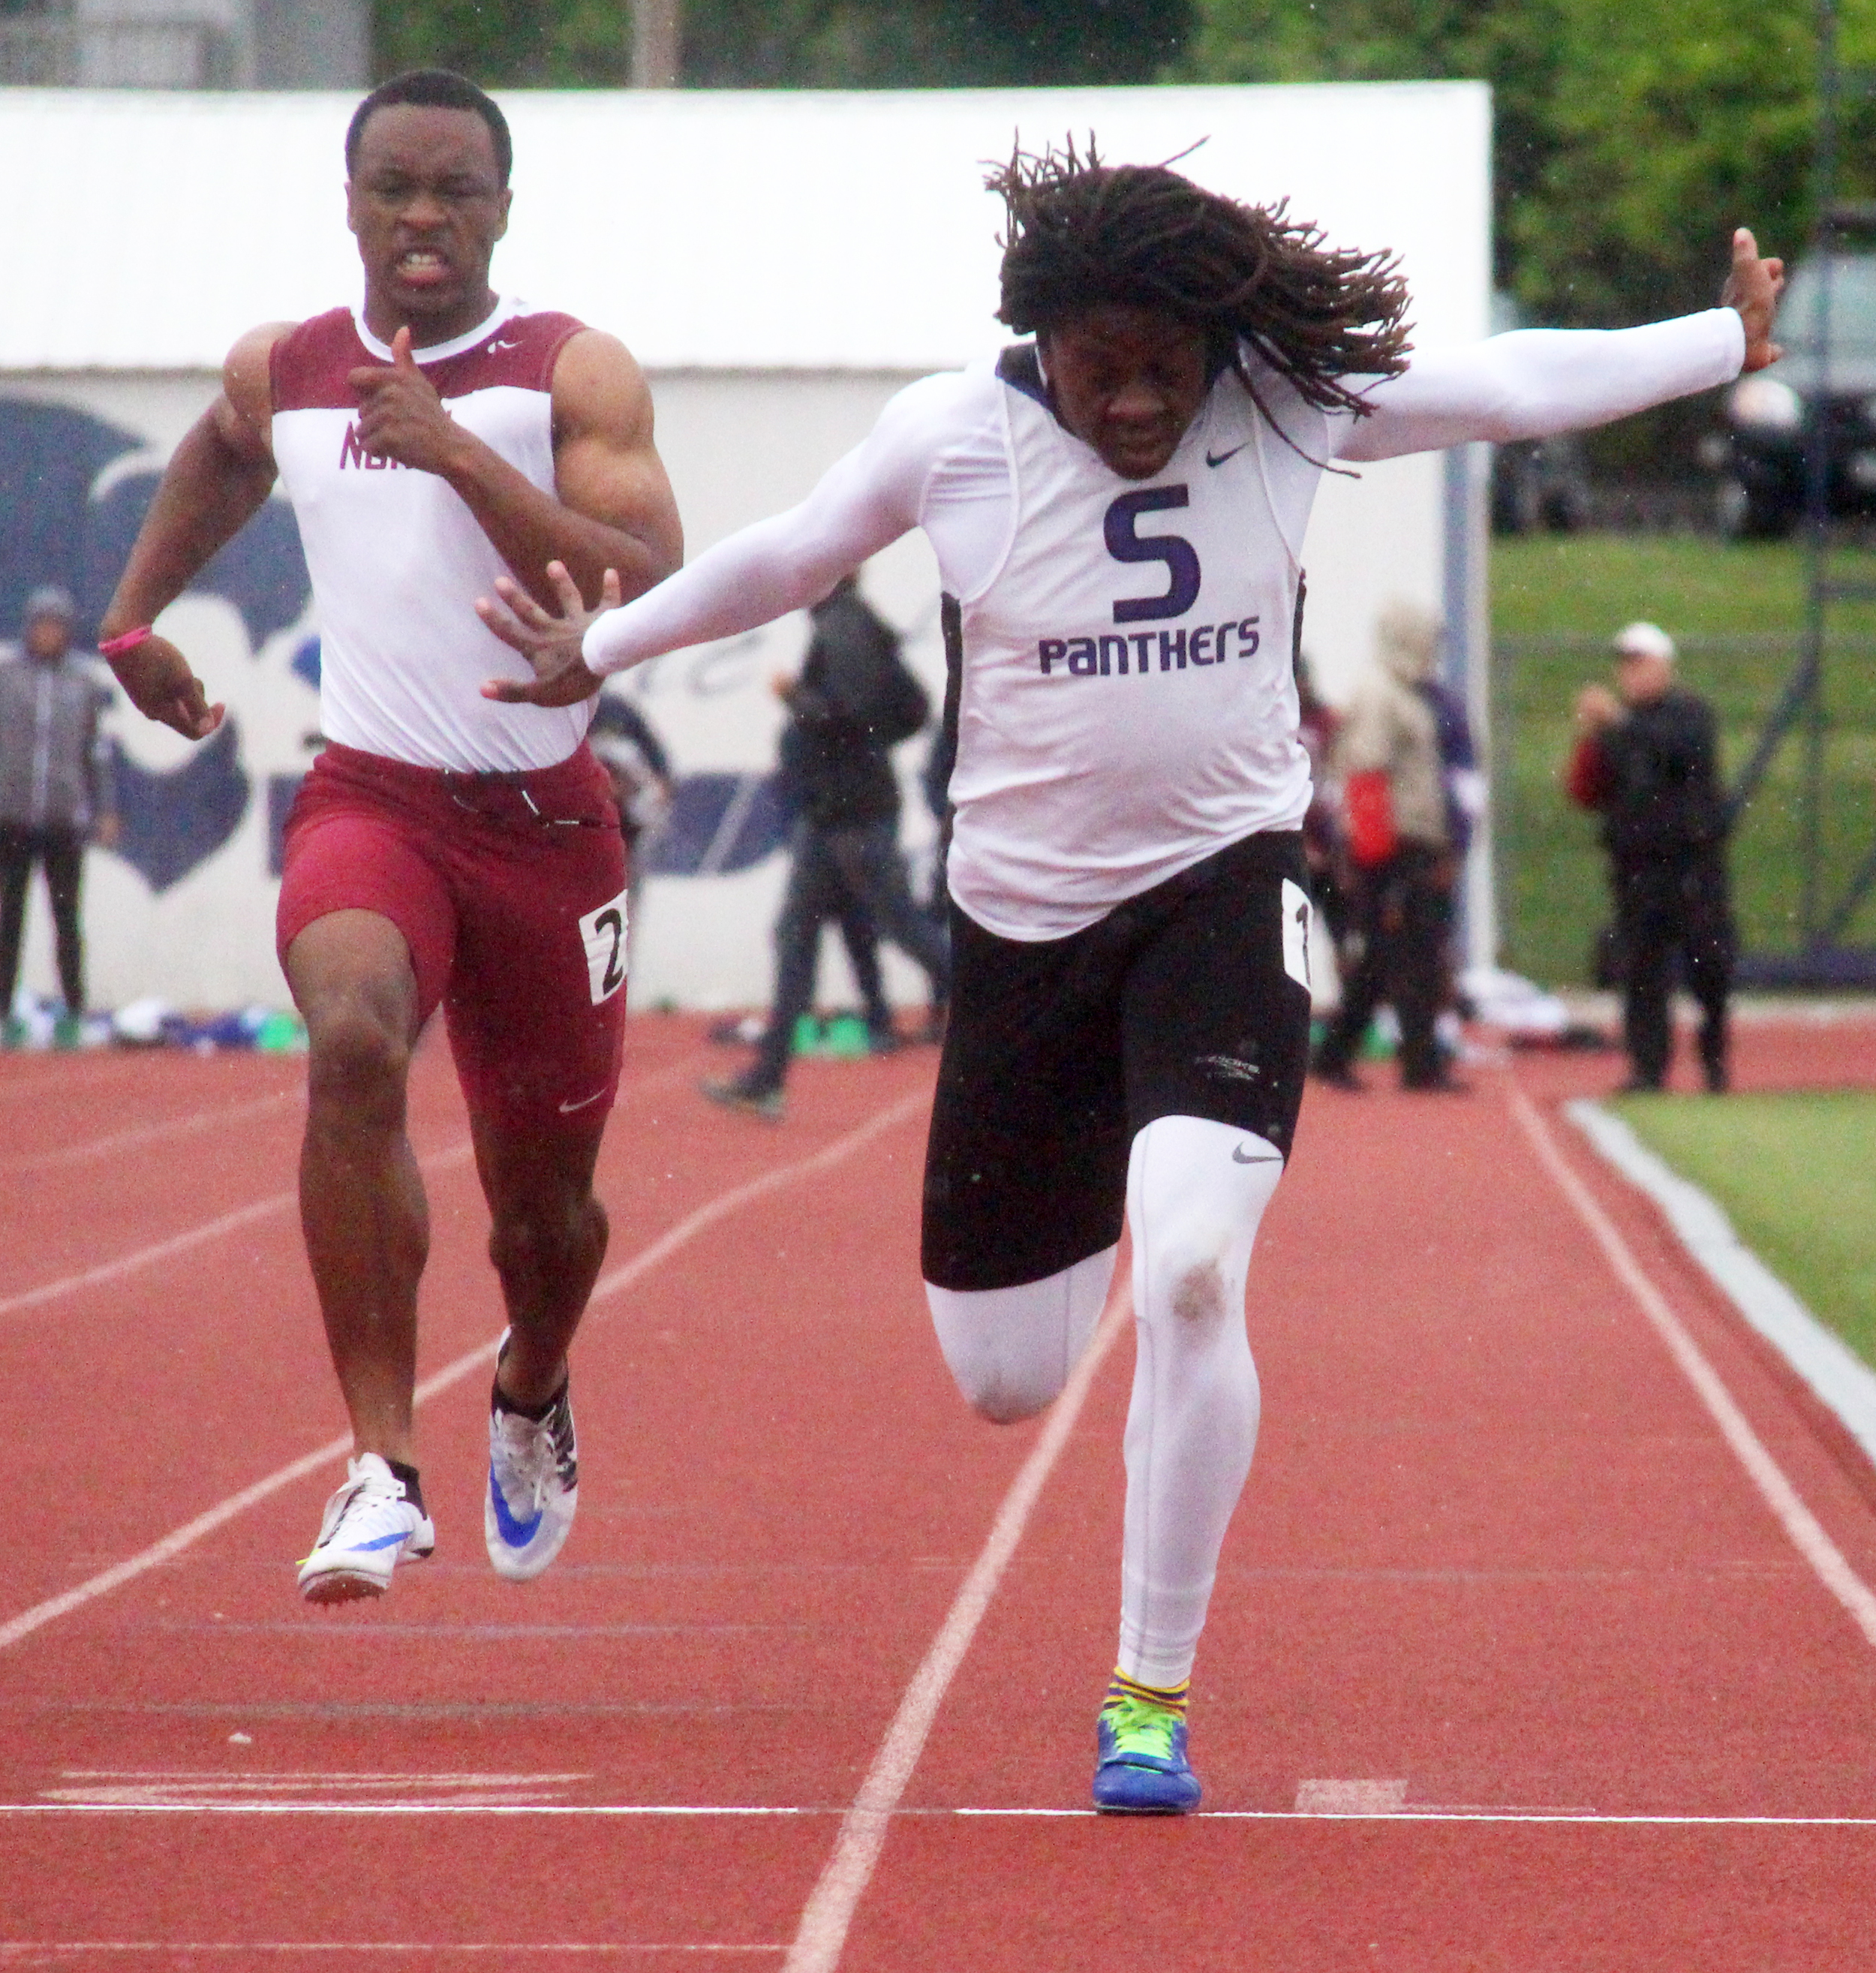 ROSS MARTIN/Citizen photo Park Hill South junior Nylo Clarke, right, lunges for the finish line in the 100-meter race Friday, April 29 in the Gary Parker Invitational at Blue Springs High School in Blue Springs, Mo. The meet was eventually canceled due to inclement weather.